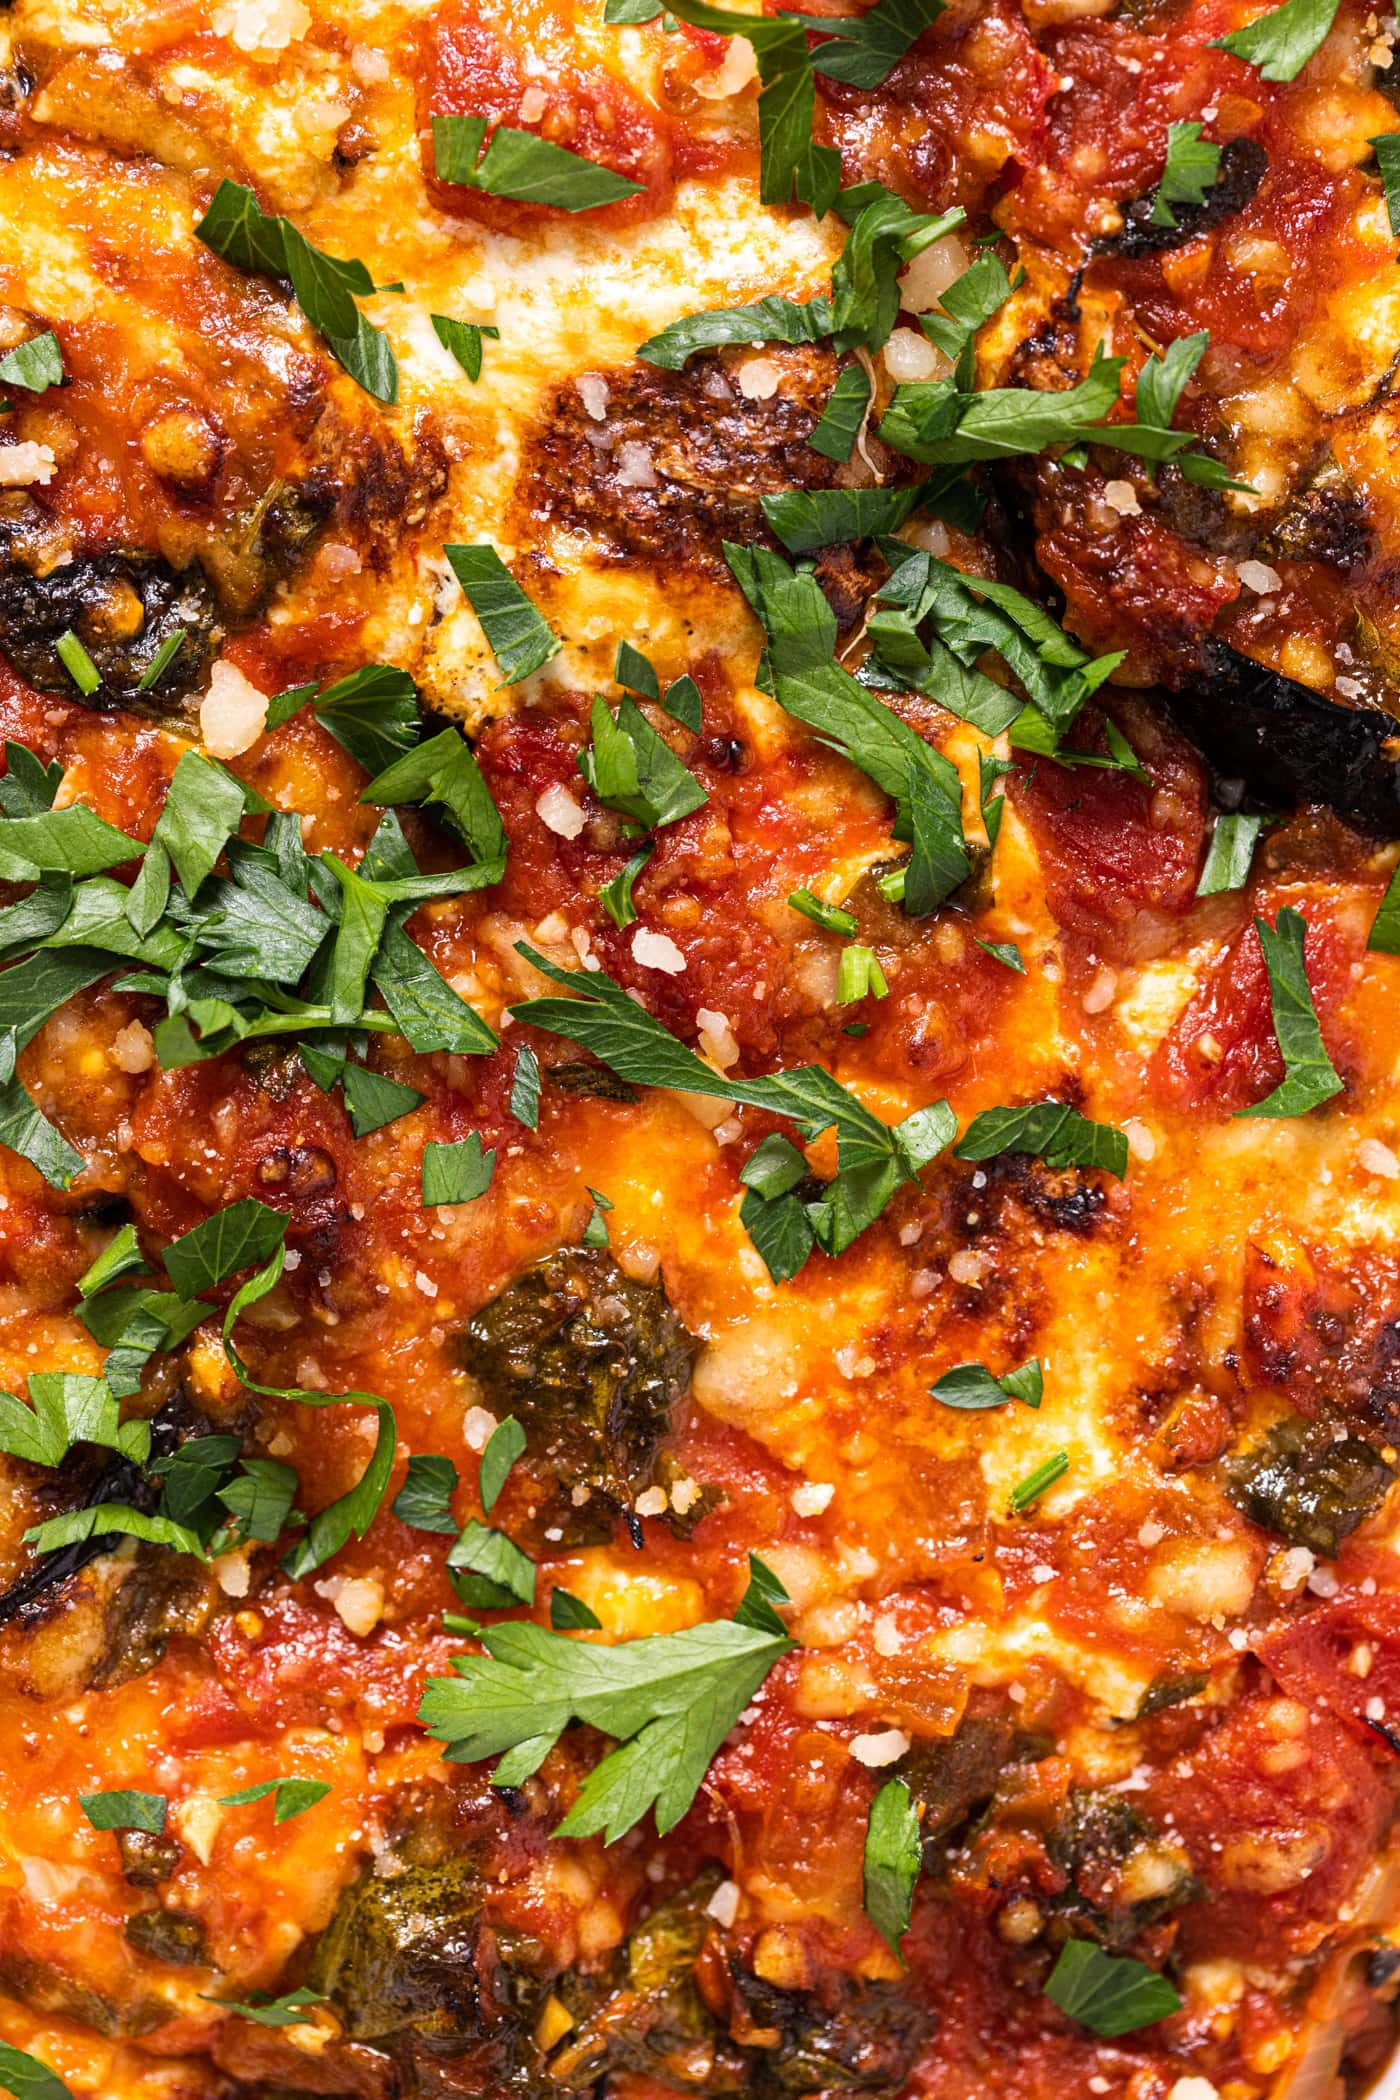 Close up view of the top layer of an eggplant lasagna recipe with bubbles of browned cheese and a fresh sprinkling of green herbs with bits of eggplant showing through the cheese